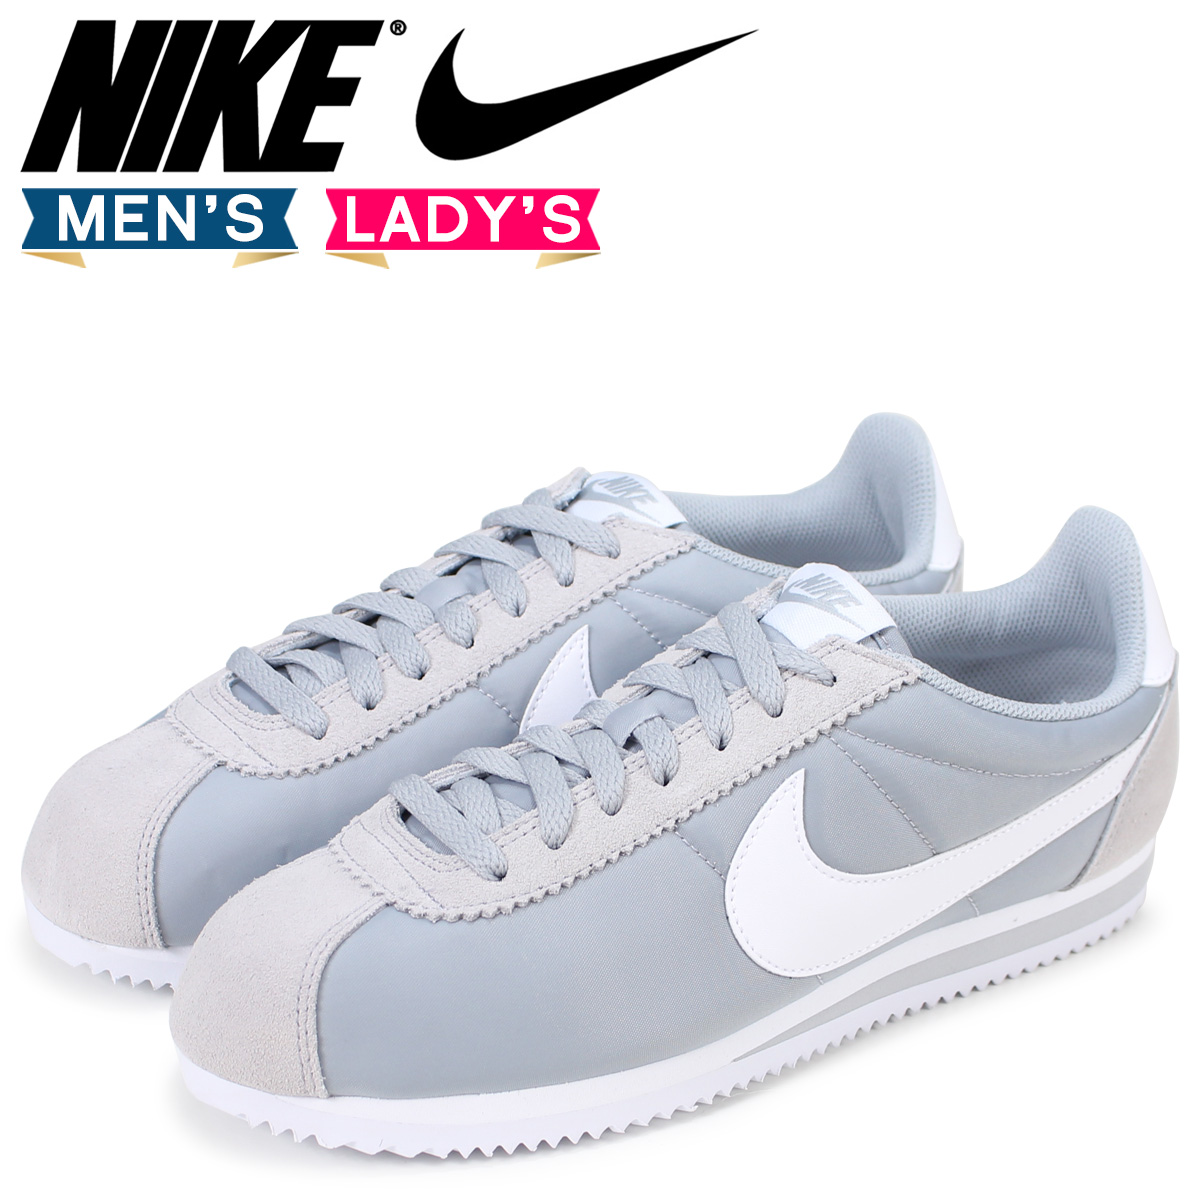 super popular 37134 ff7f7 Nike NIKE classic Cortez sneaker CLASSIC CORTEZ NYLON 807472-010 Wolf grey  mens womens shoes grey